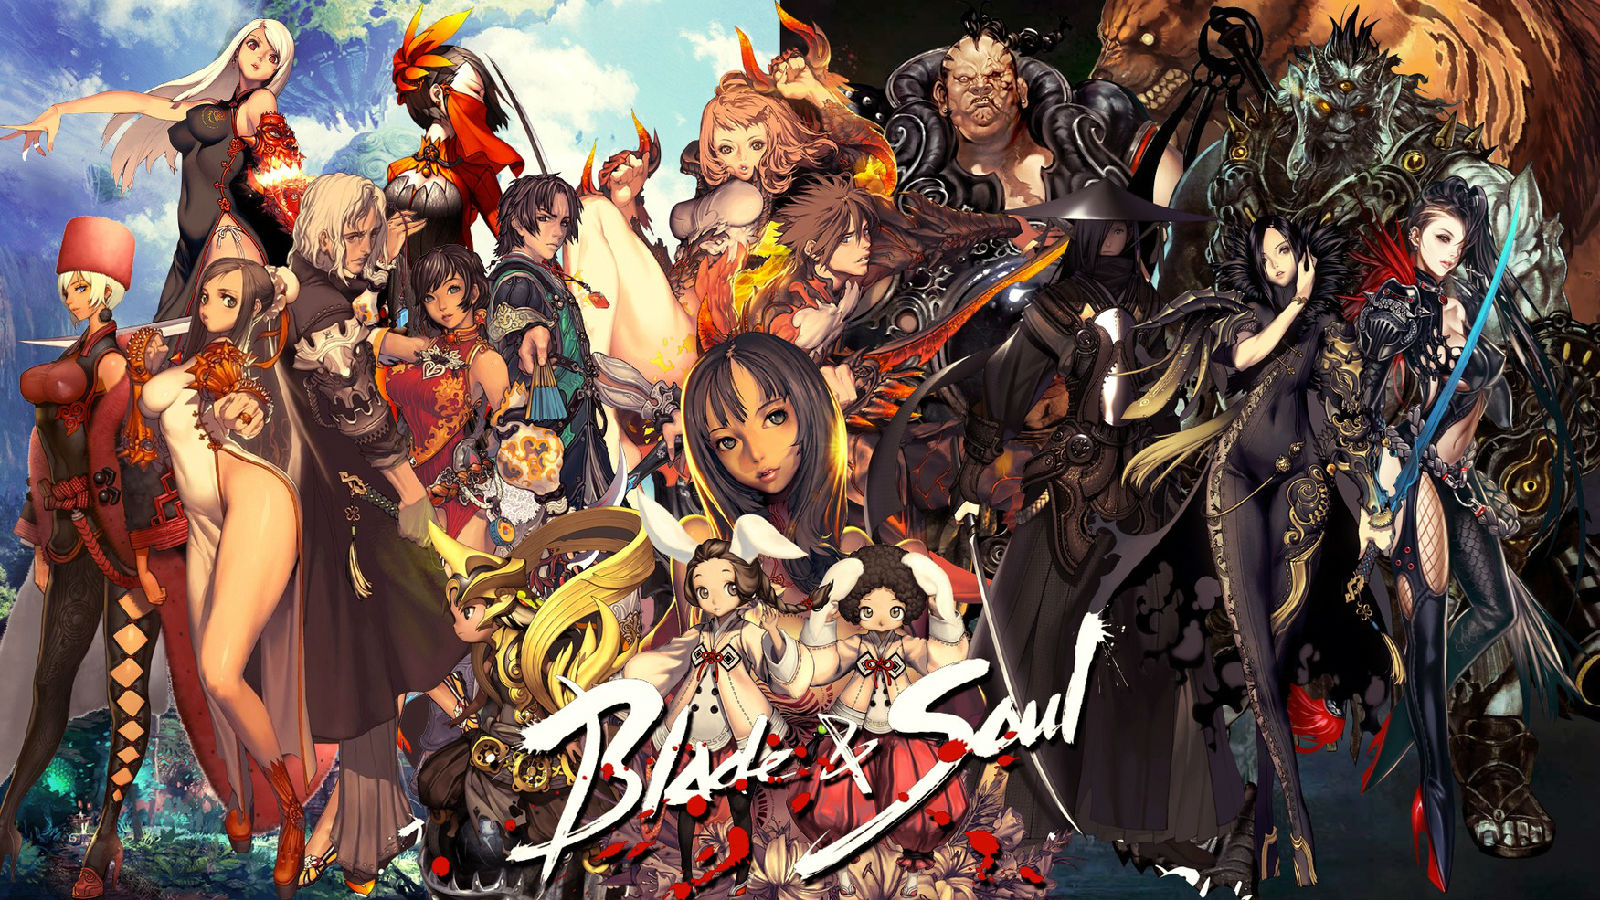 964774-november-22-2015-blade-and-soul-video-games-image-galleries